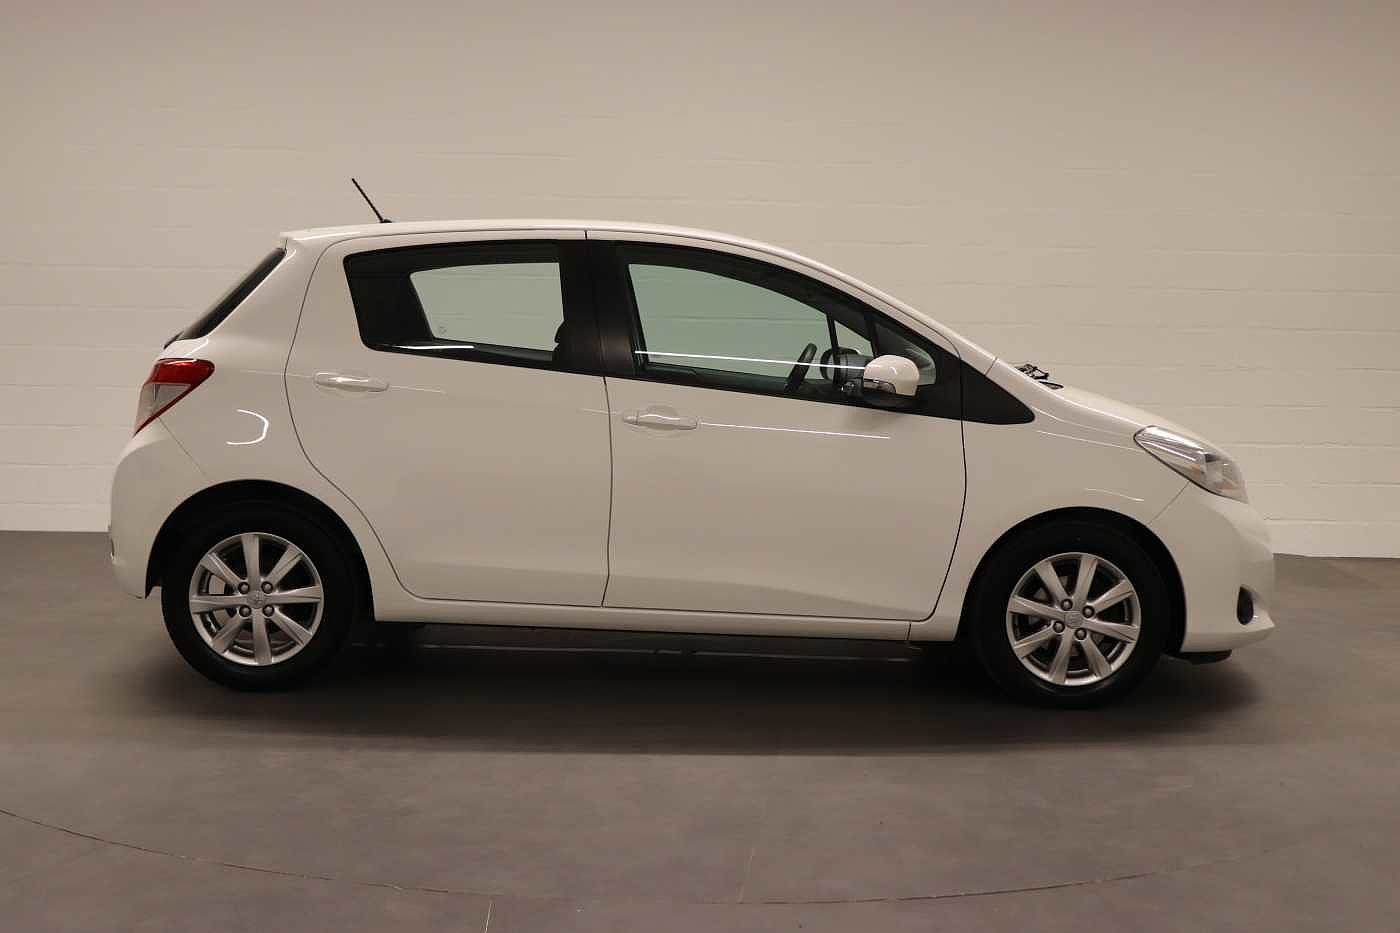 Toyota Yaris 1.4 D-4D 6MT - photo 7